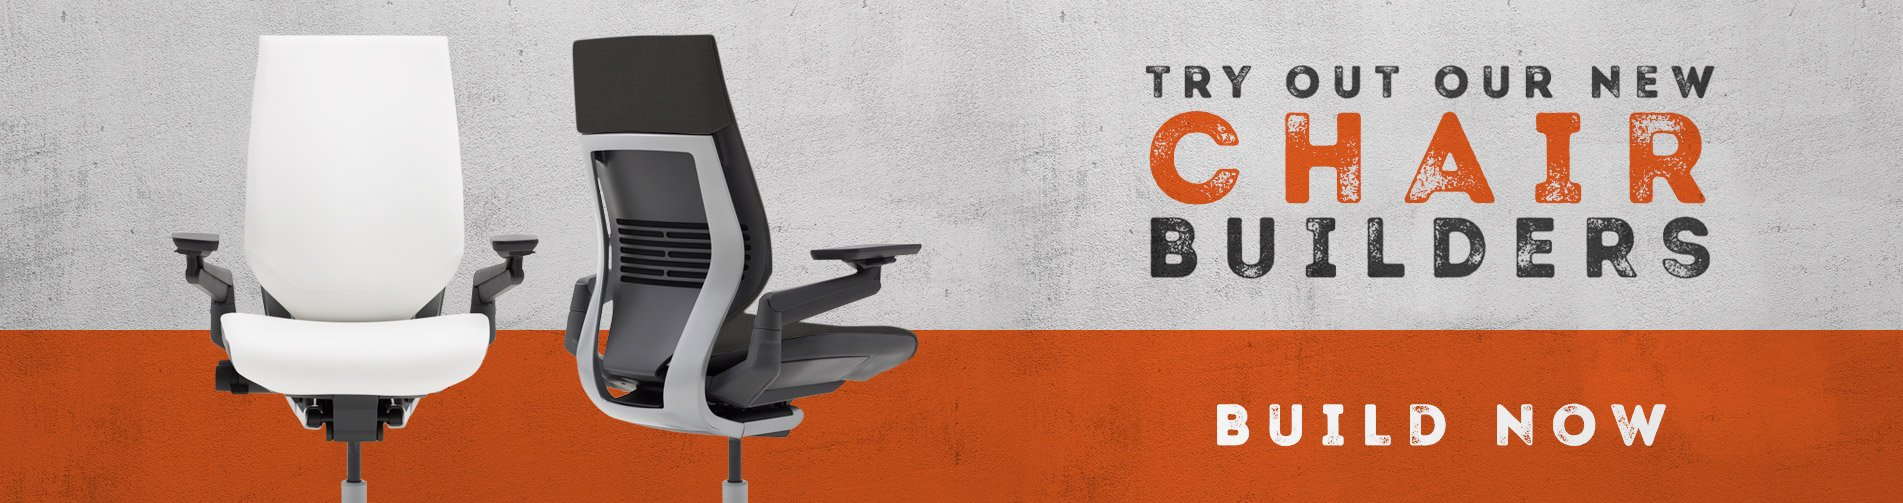 Try Our New Ergonomic Chair Builders